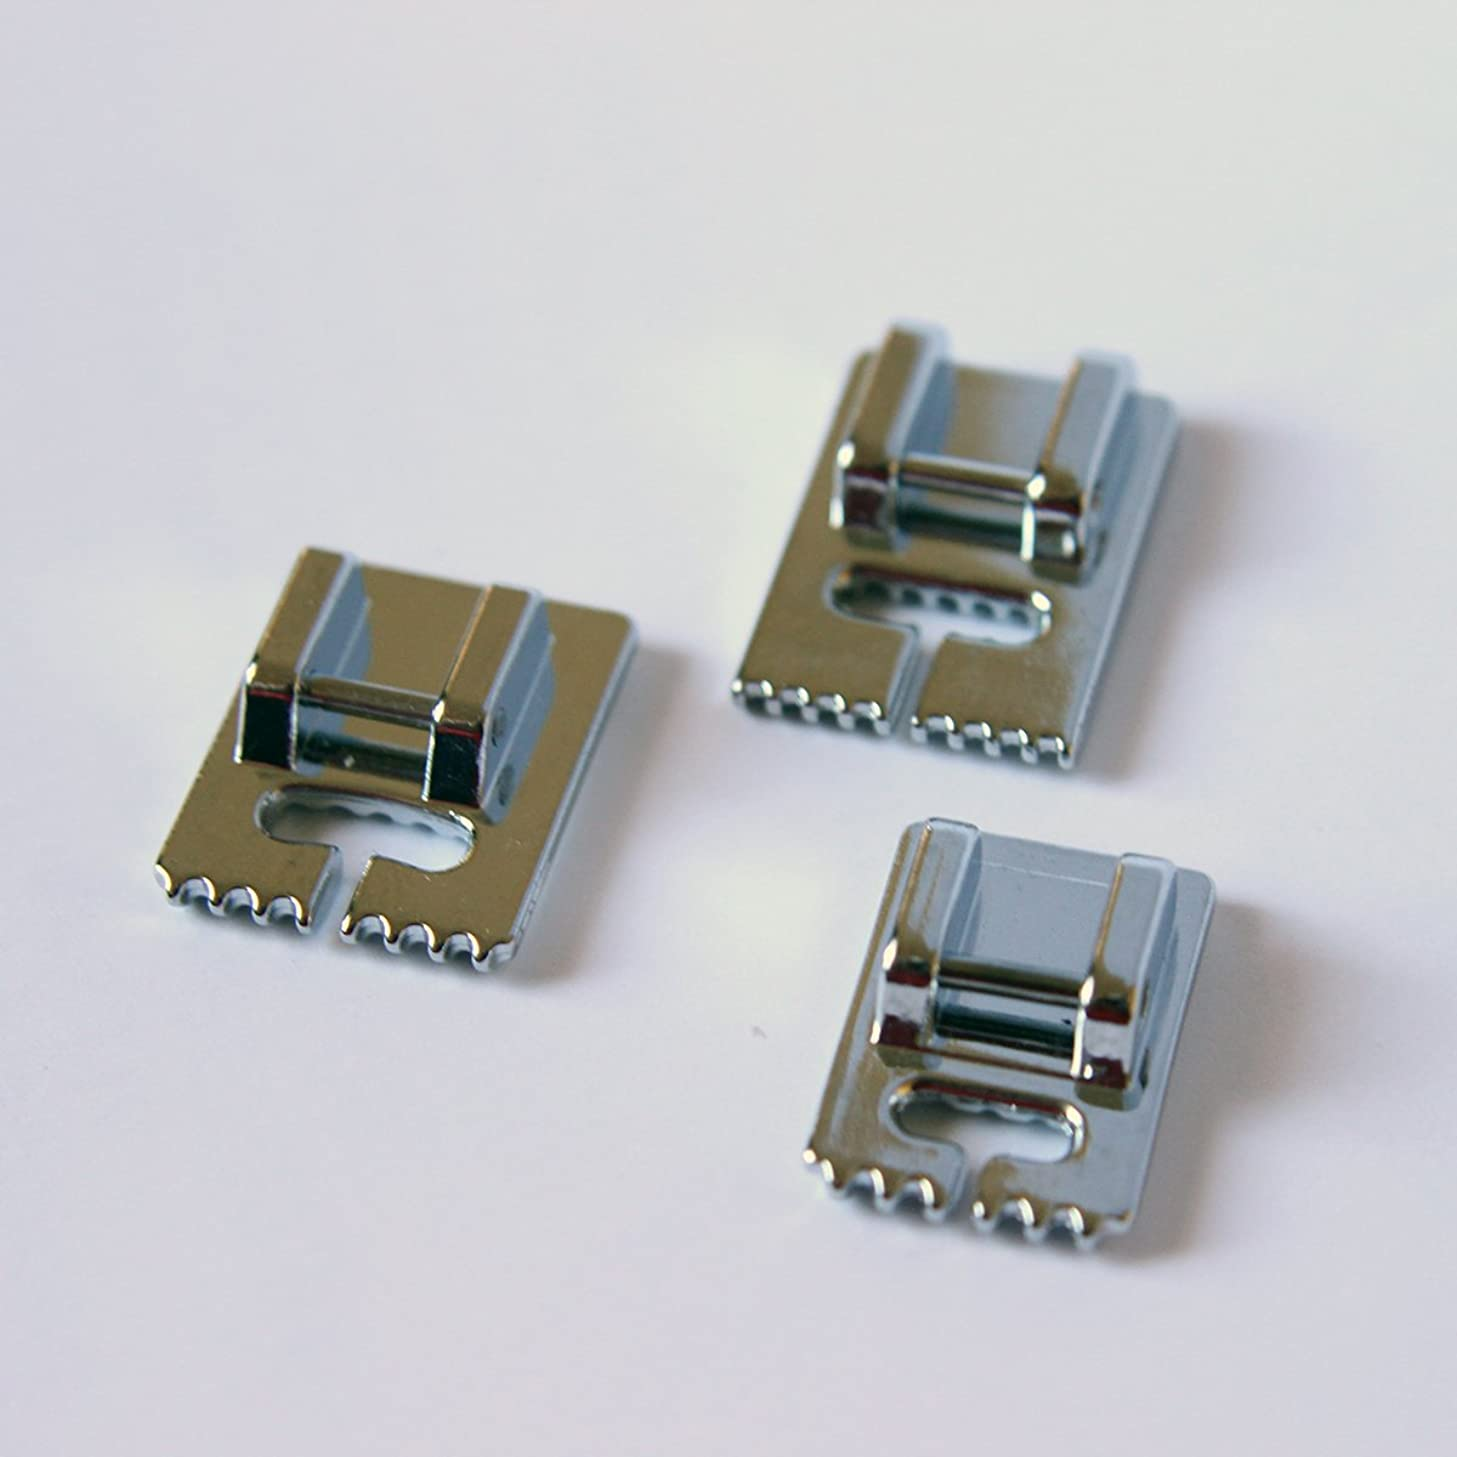 Pintuck Groove Presser Foot Set including a 9 Groove, 7 Groove, and 5 Groove - Fits All Low Shank Snap-On Brother, Babylock, Euro-Pro, Janome, Kenmore, White and more!